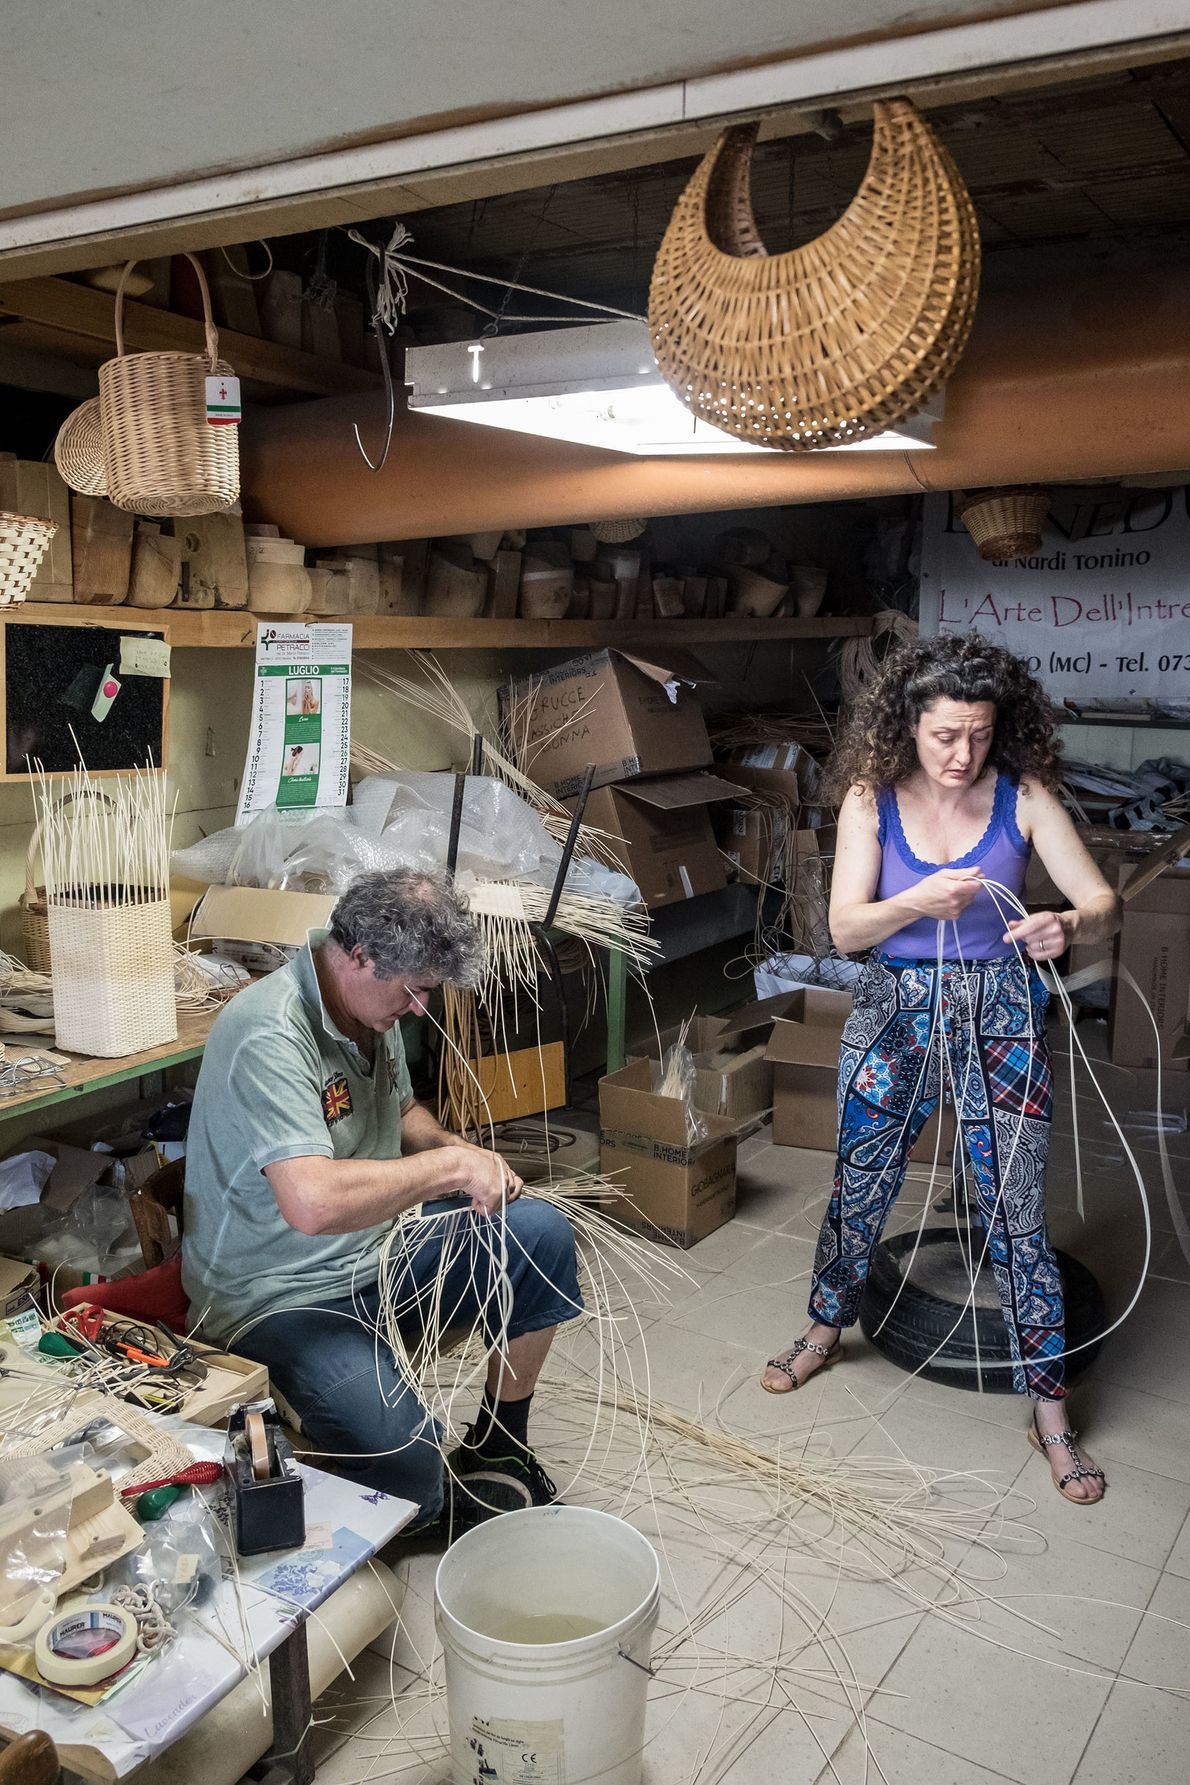 Tonino Nardi and his wife Morena weave bags in the workshop beside their house in Mogliano.